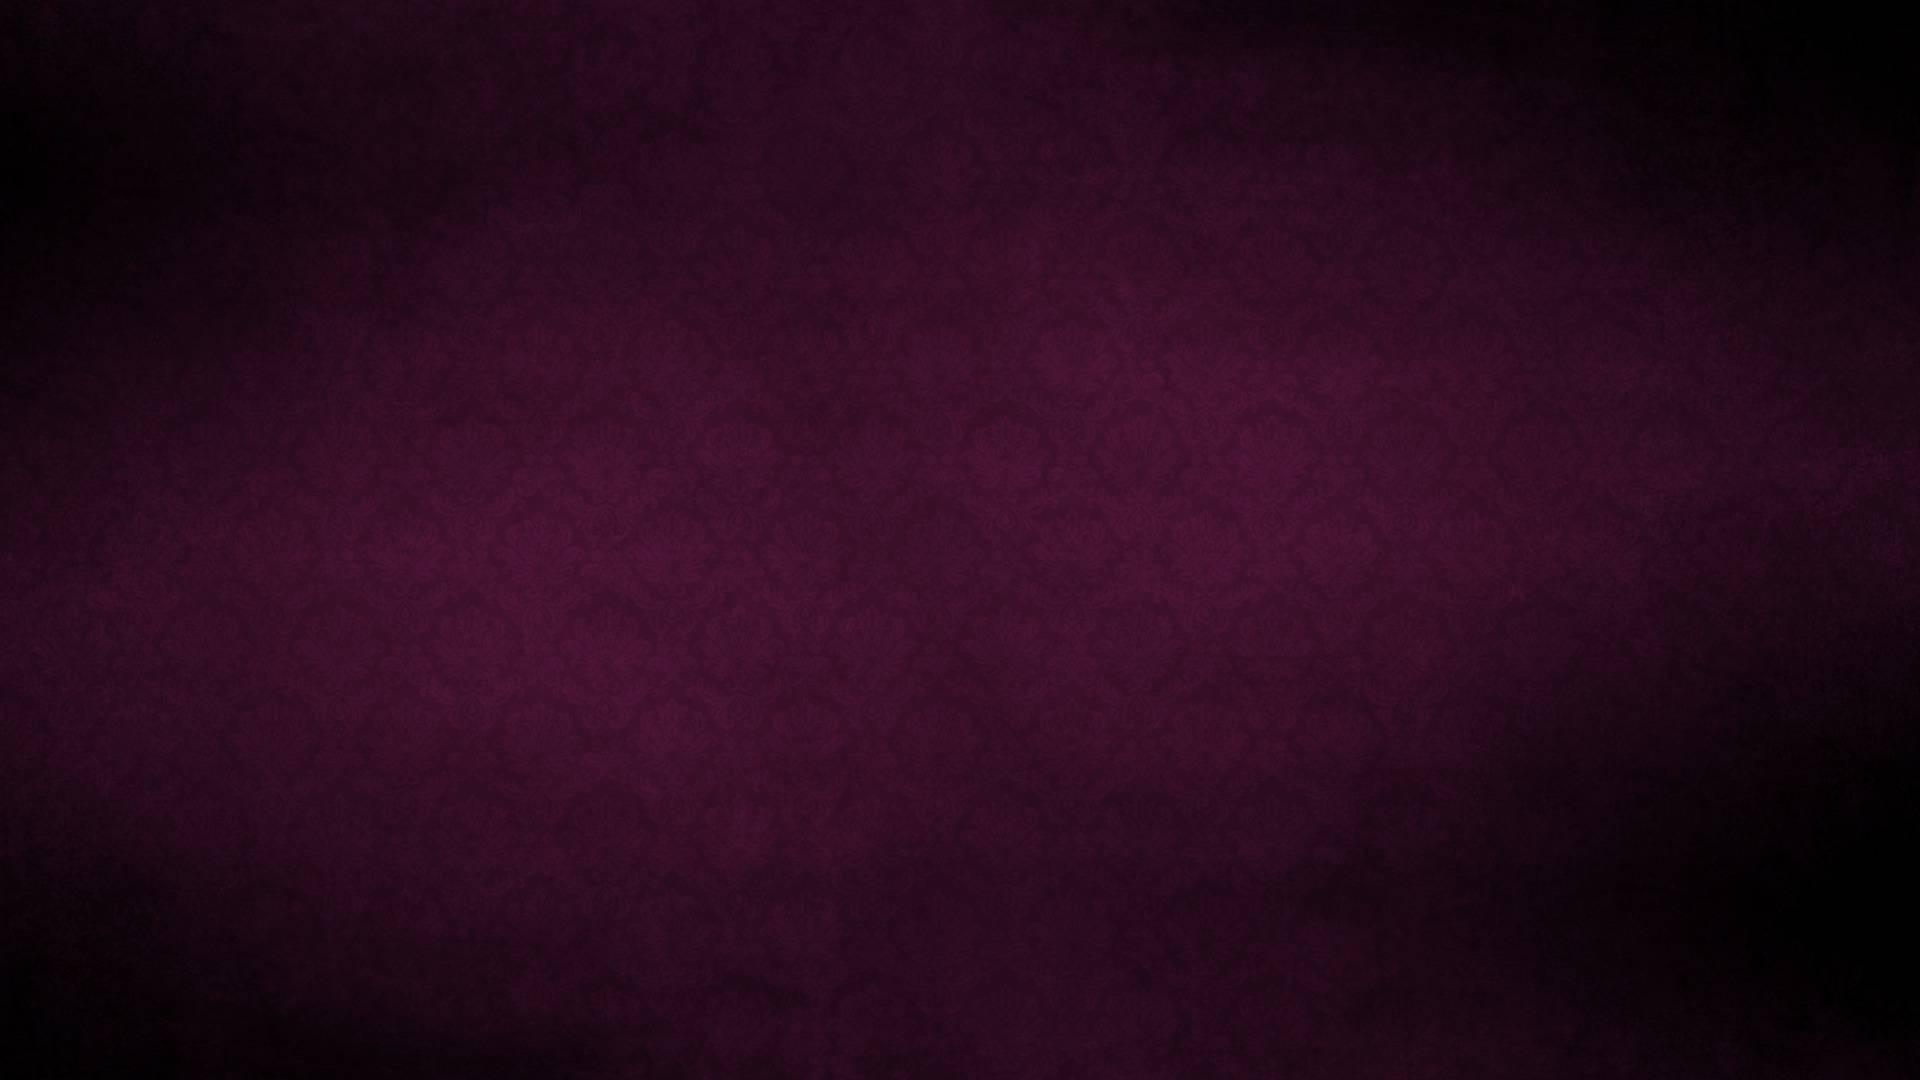 Violet Colour Wallpaper Wallpaper High Definition High Quality